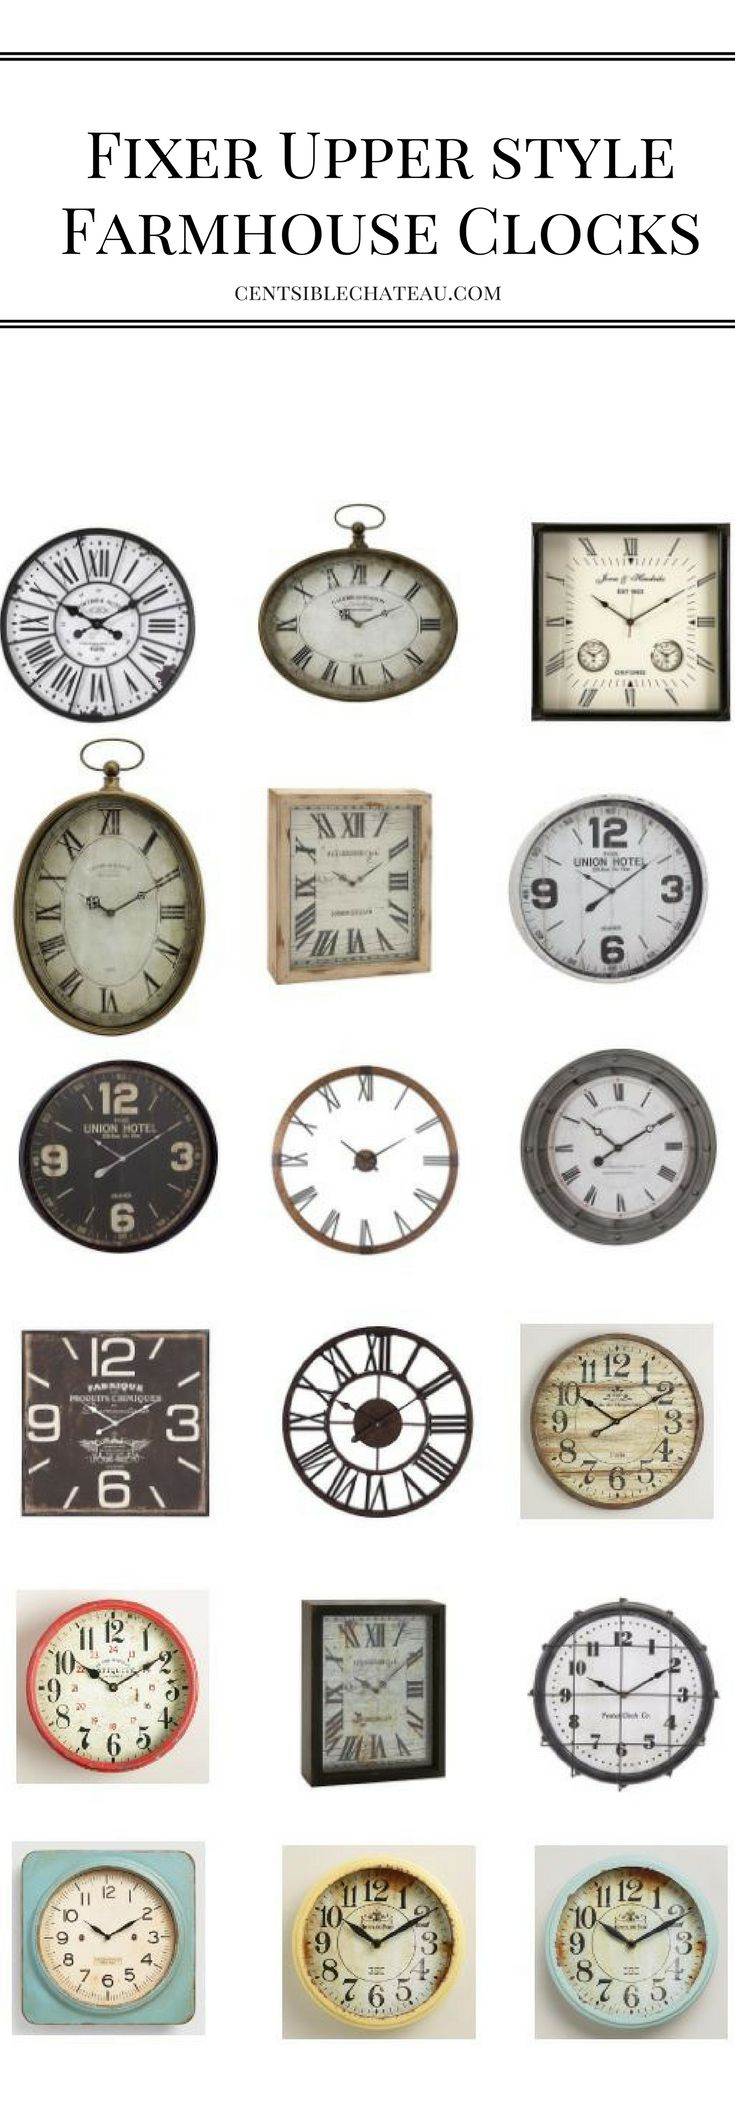 Clocks used as a home decor idea - use this in your living spaces